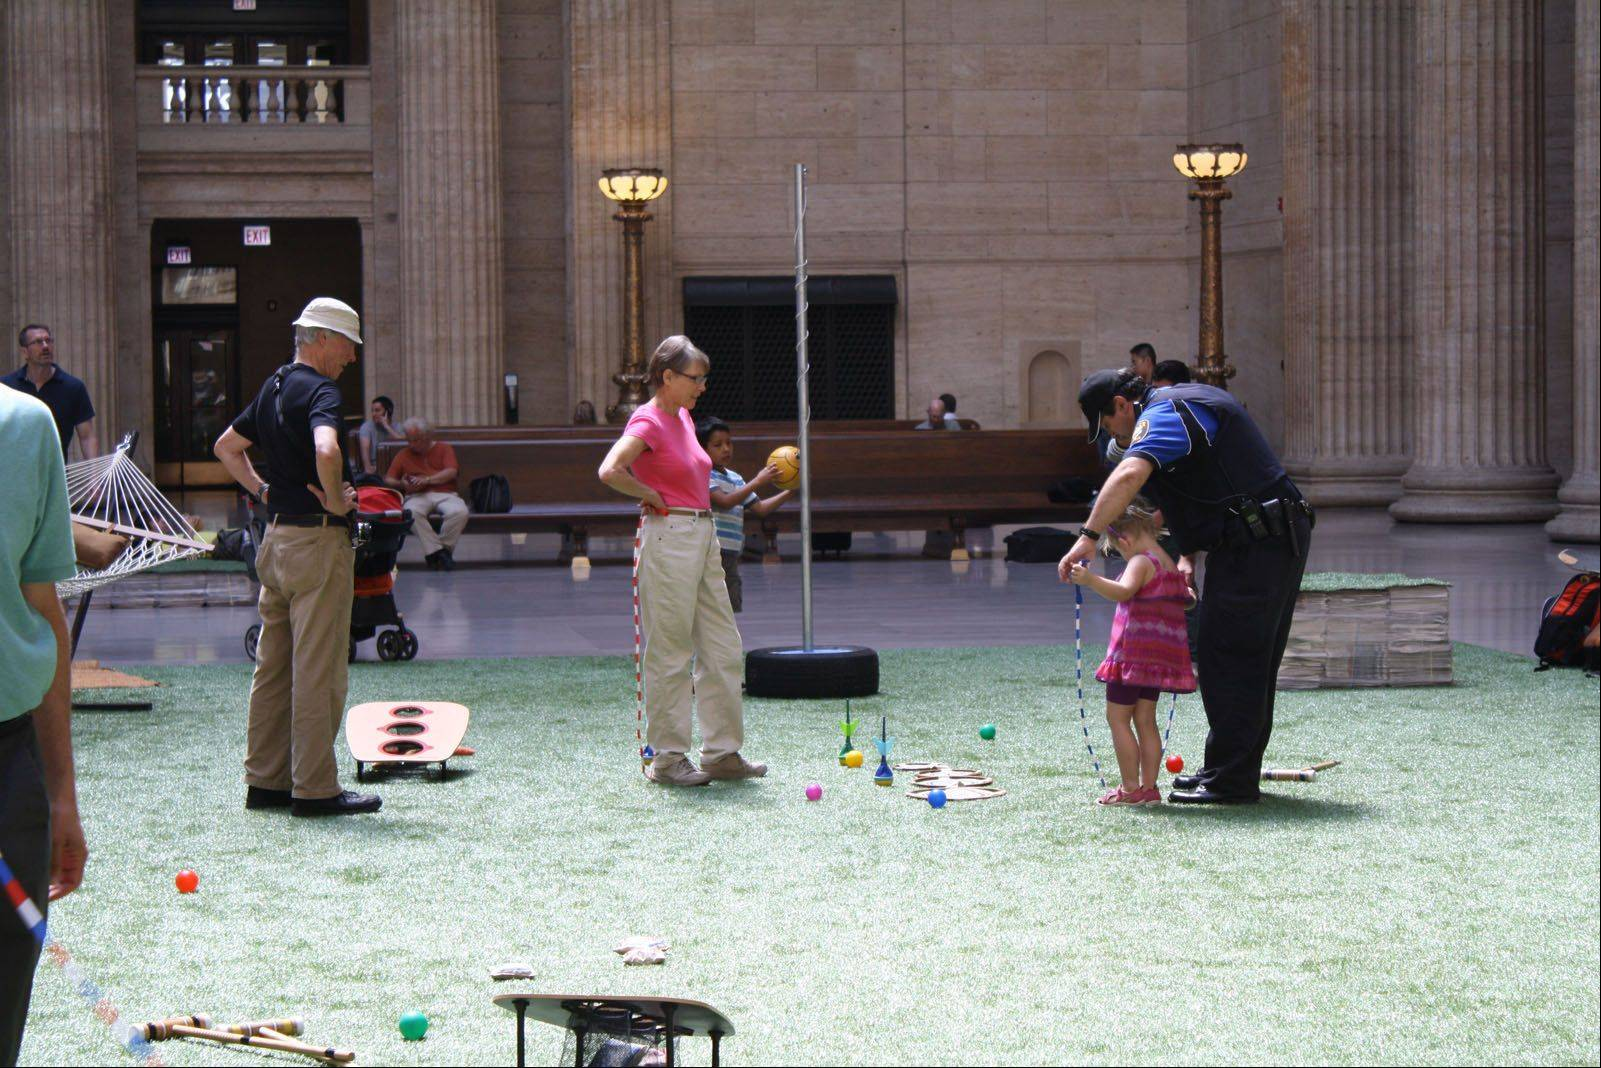 People play backyard games in the Great Hall of Union Station, part of a winning design created by Buffalo Grove native Corey Nissenberg�s team for a Chicago competition.